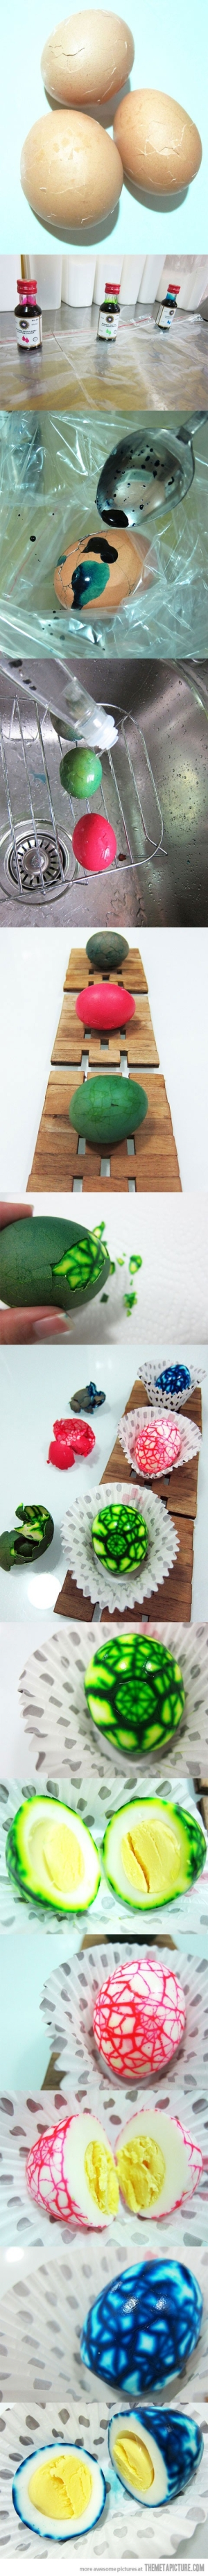 Coloured eggs 4 KIDS dino party... use natural food coloring like ...